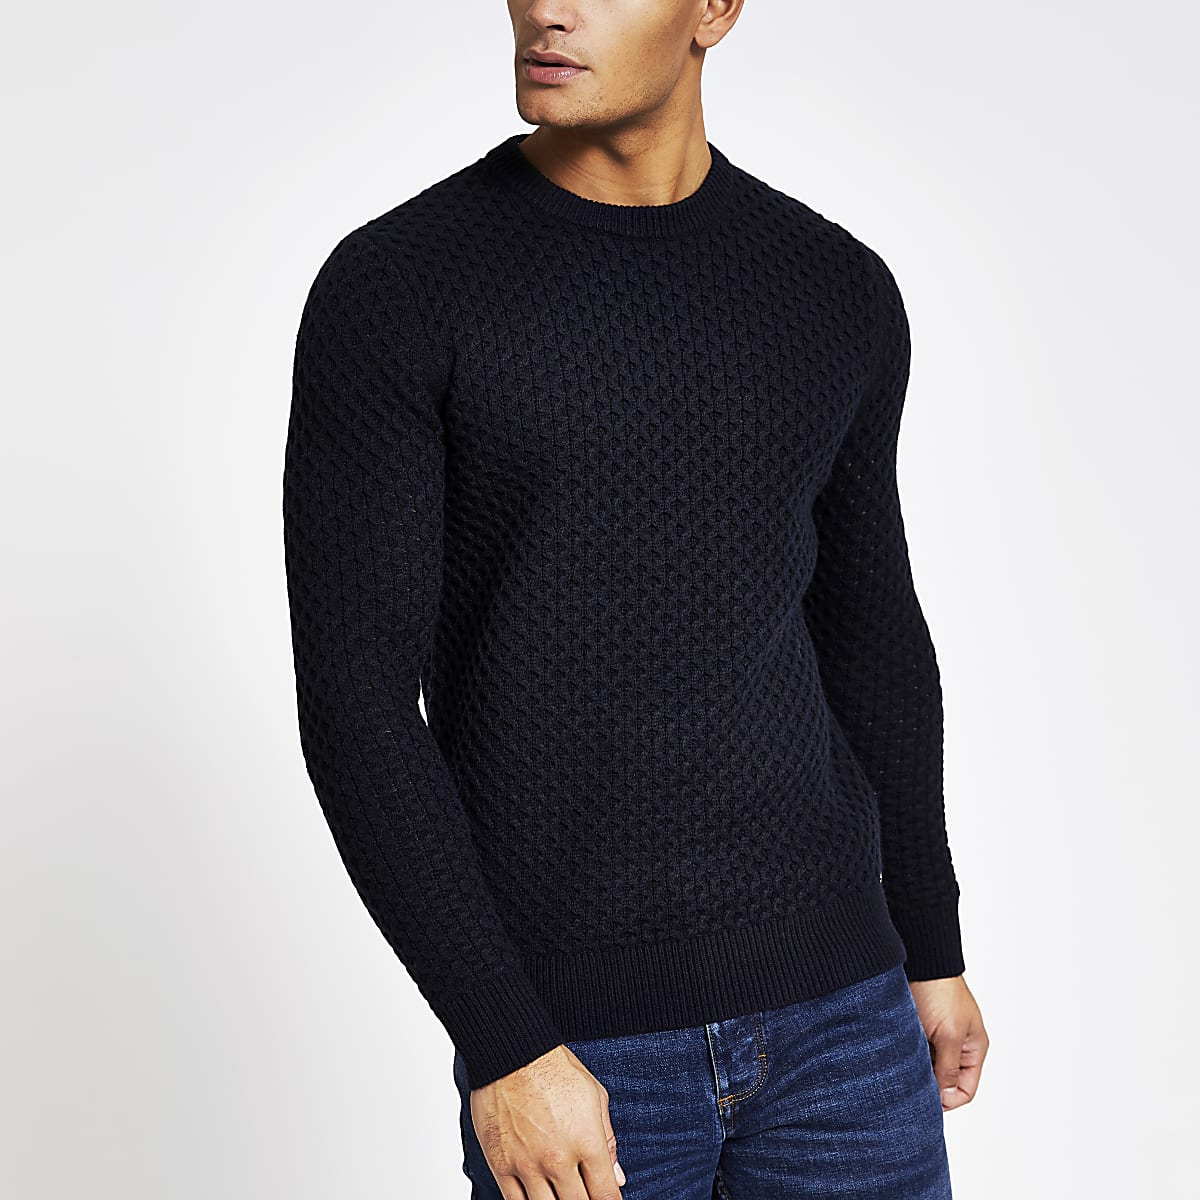 Superdry Edit navy cable knit jumper